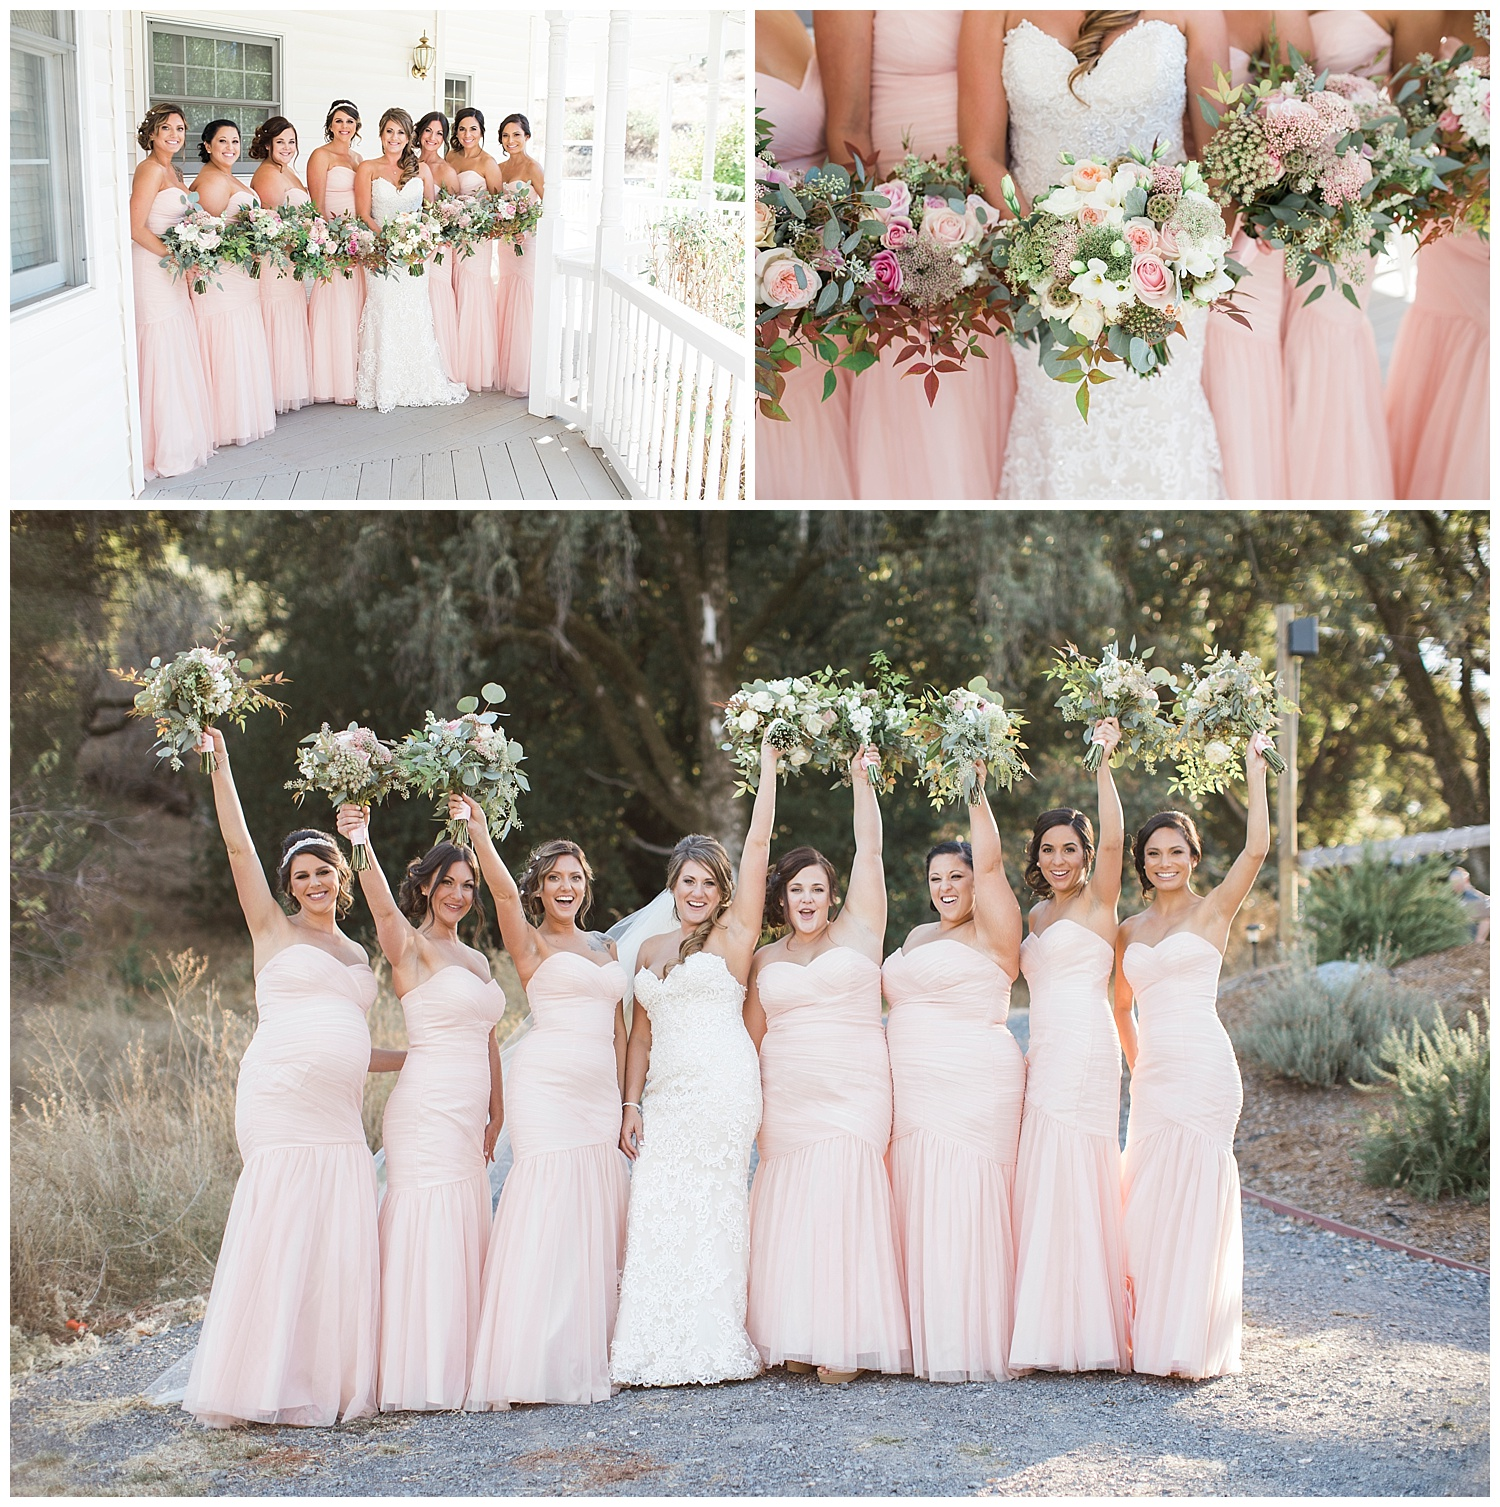 highlandsestate-nicolequiroz-cloverdale-california-wedding-photographerNICOLEQUIROZ_03.jpg